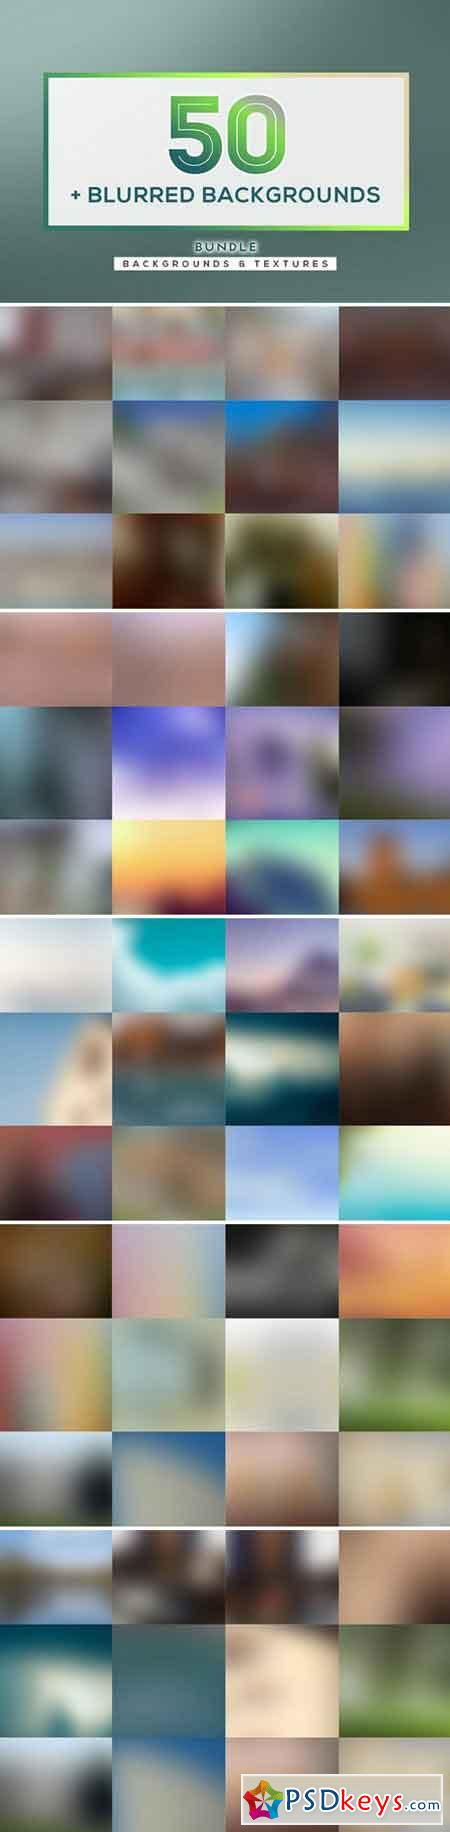 BUNDLE 50 Blurred Backgrounds 2104003